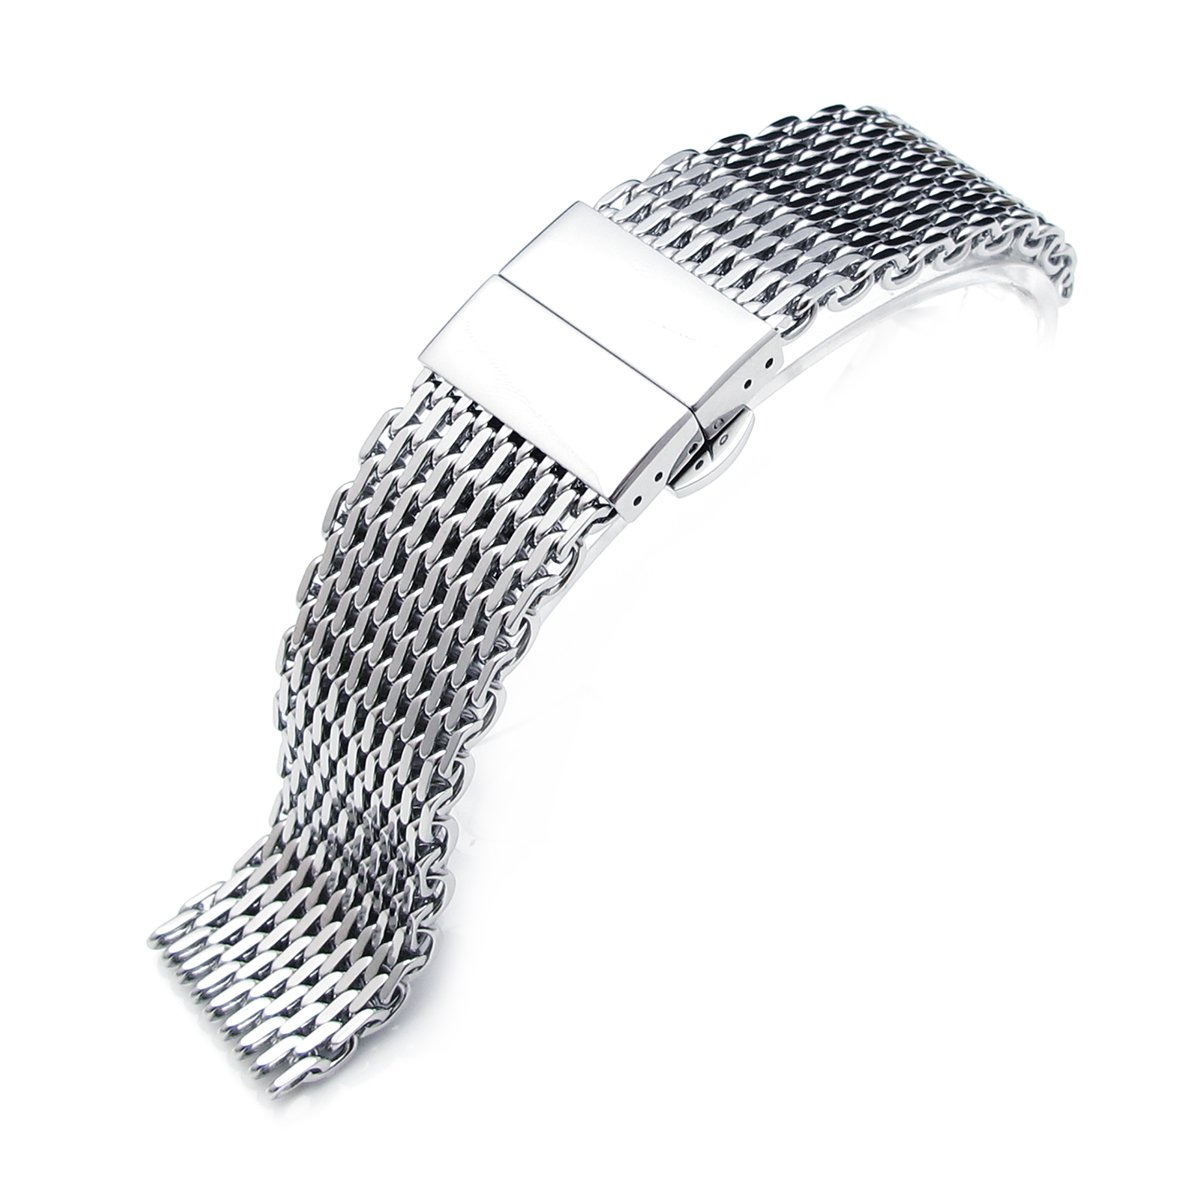 20mm Ploprof 316 Reform Stainless Steel ''SHARK'' Mesh Watch Band Deployant Strap, Polished (AZ)